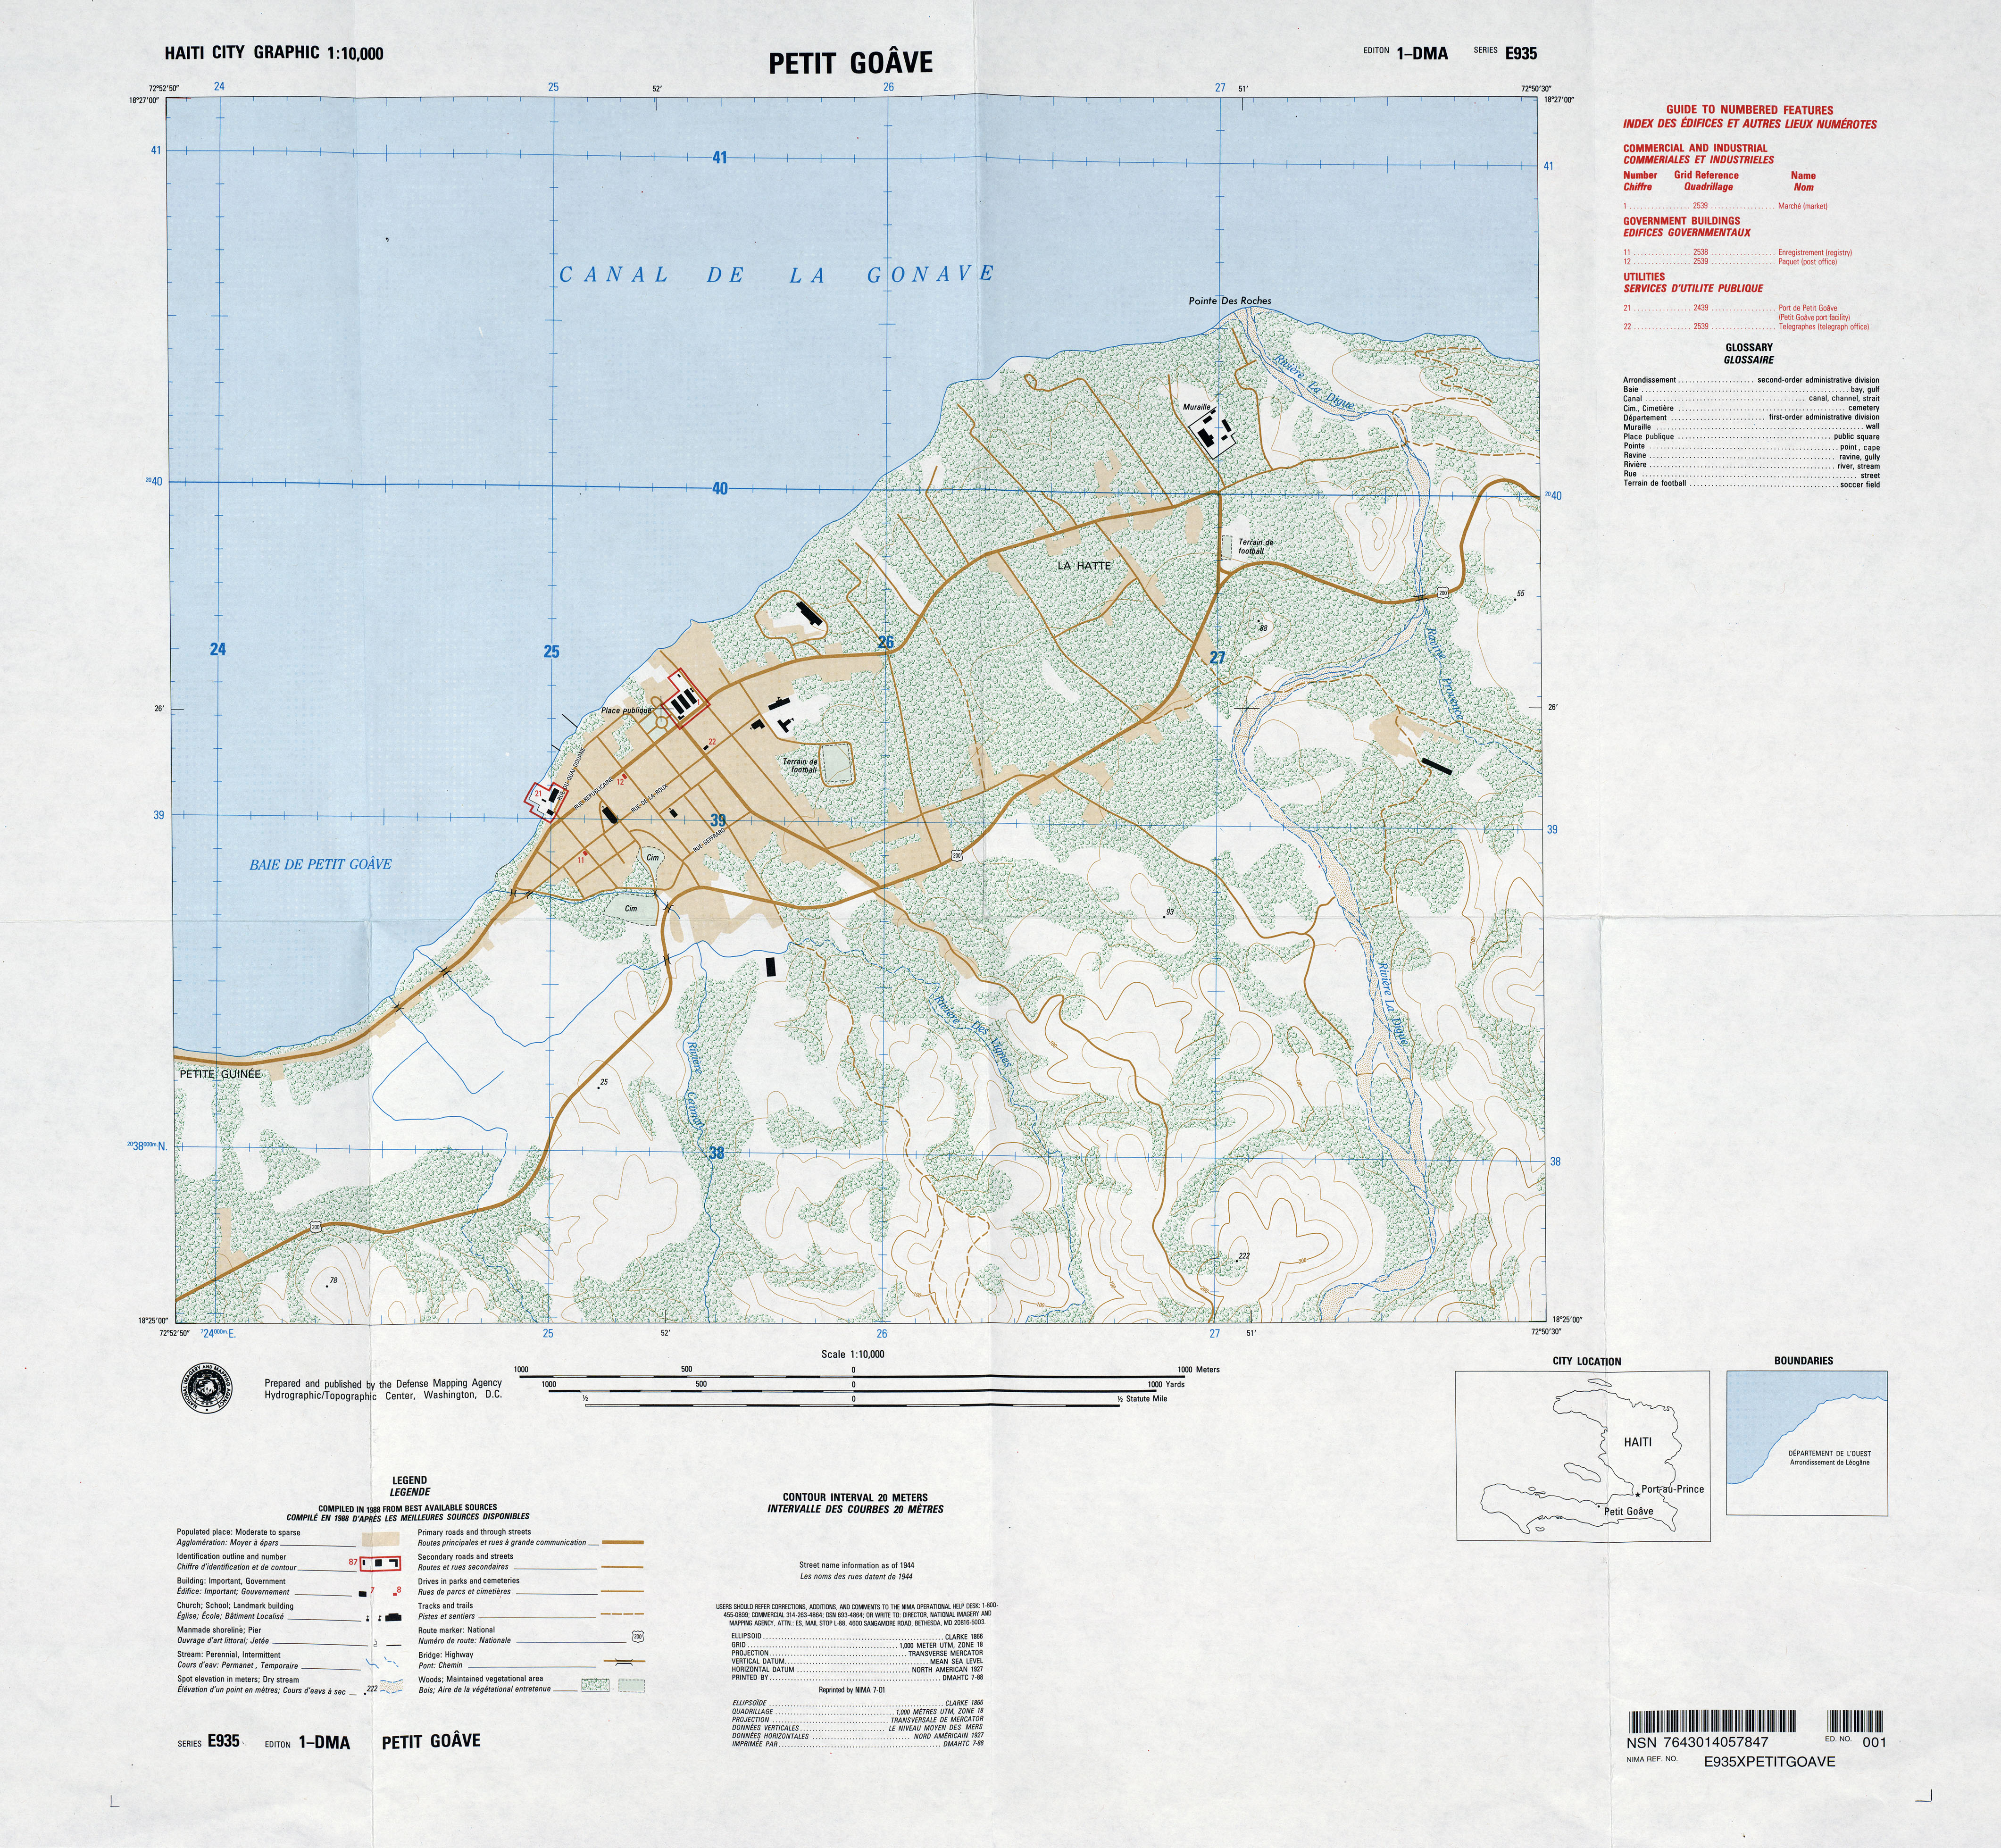 Haiti Maps - Perry-Castañeda Map Collection - UT Library Online